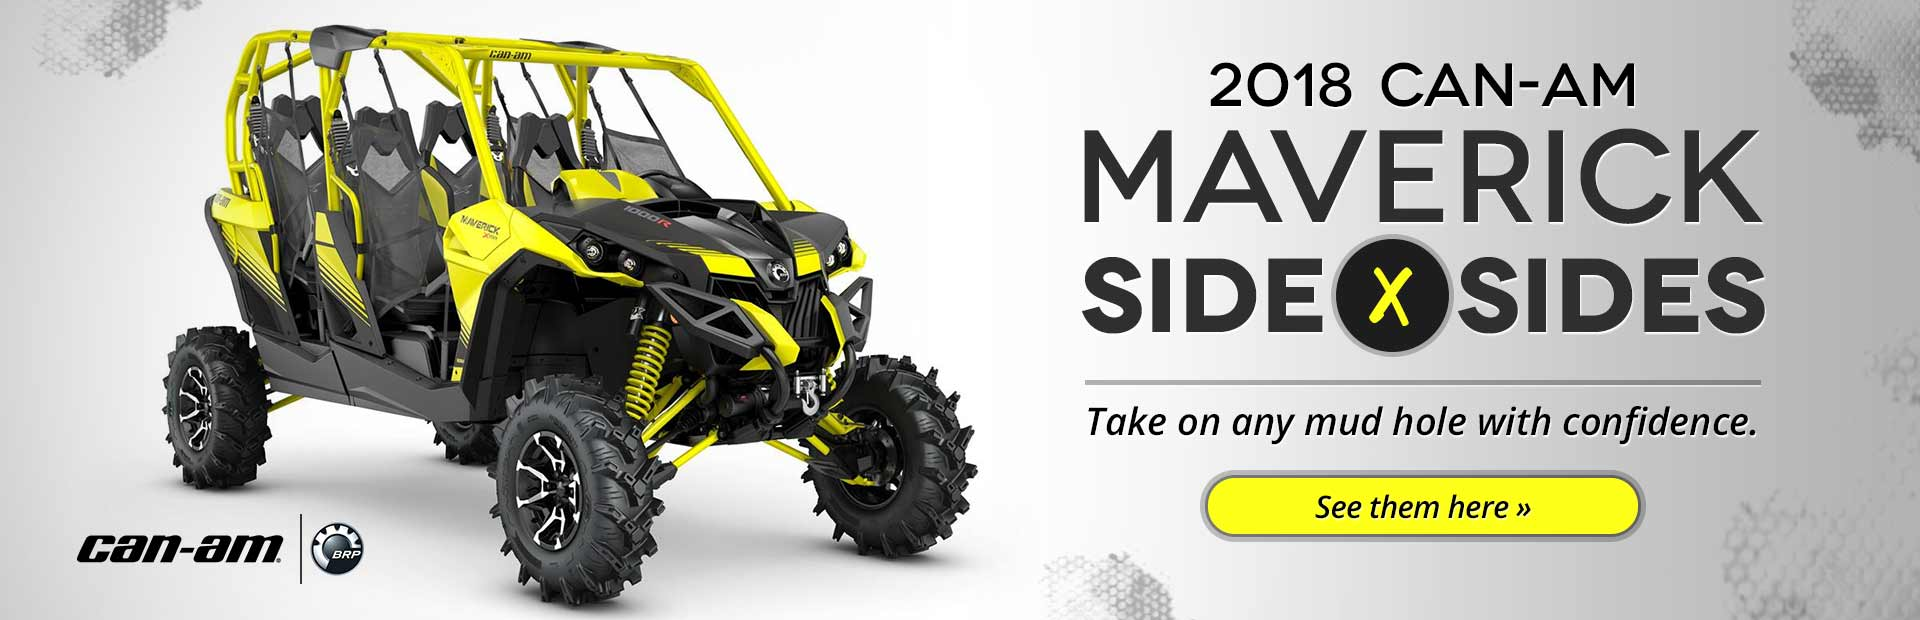 2018 Can-Am Maverick Side x Sides: Click here to view the models.